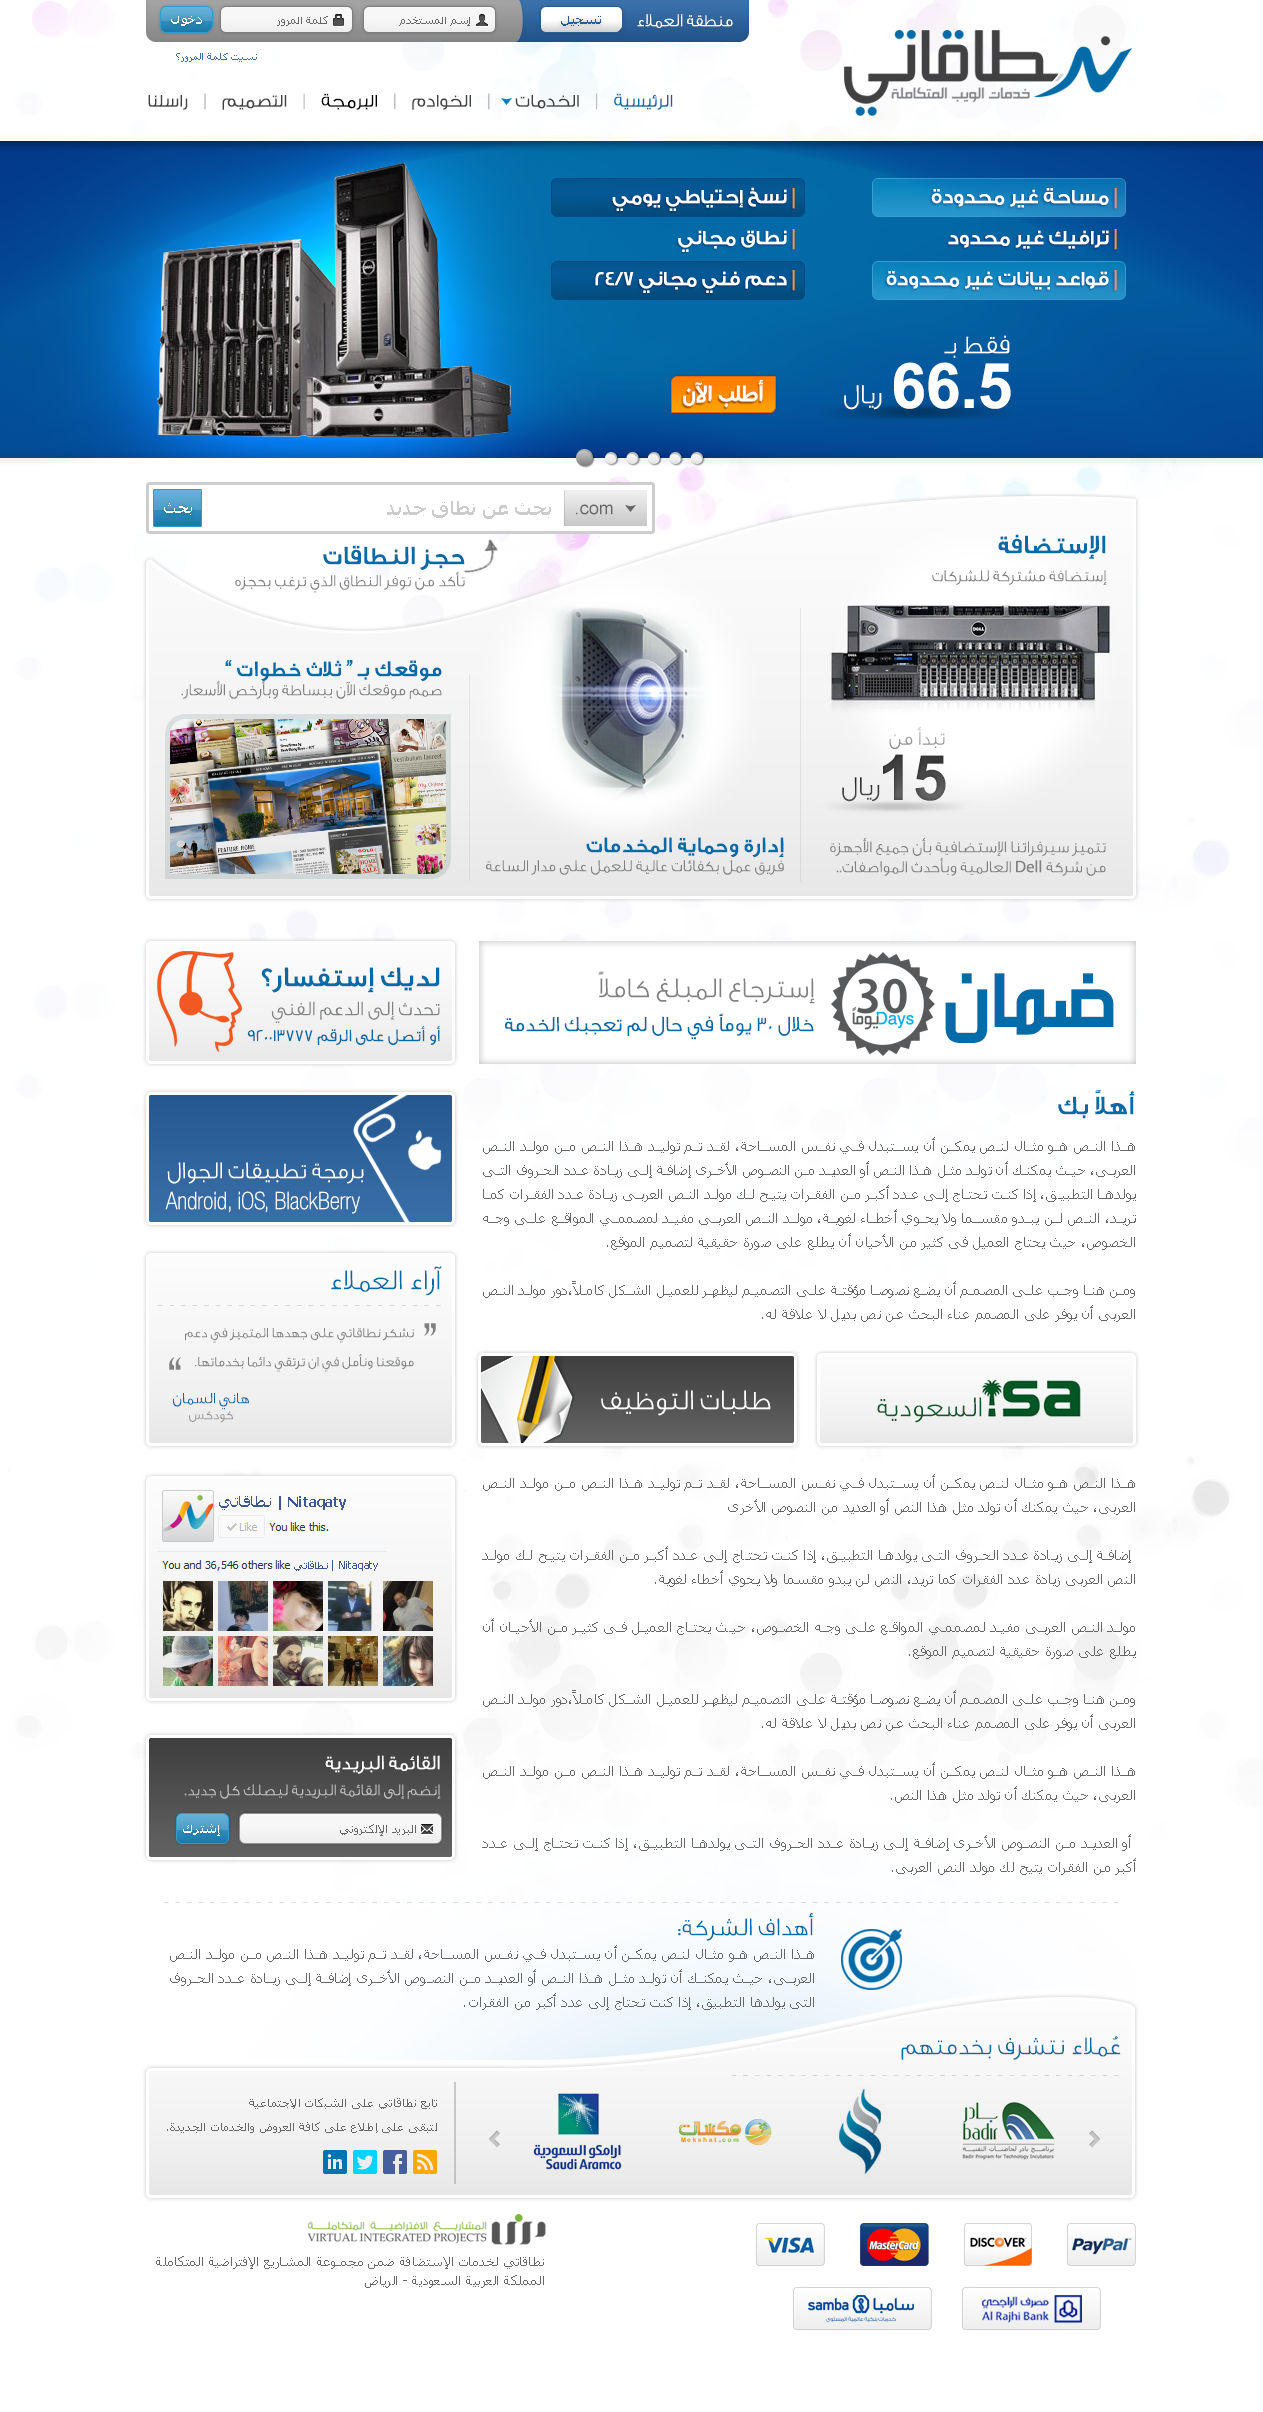 nitaqaty website